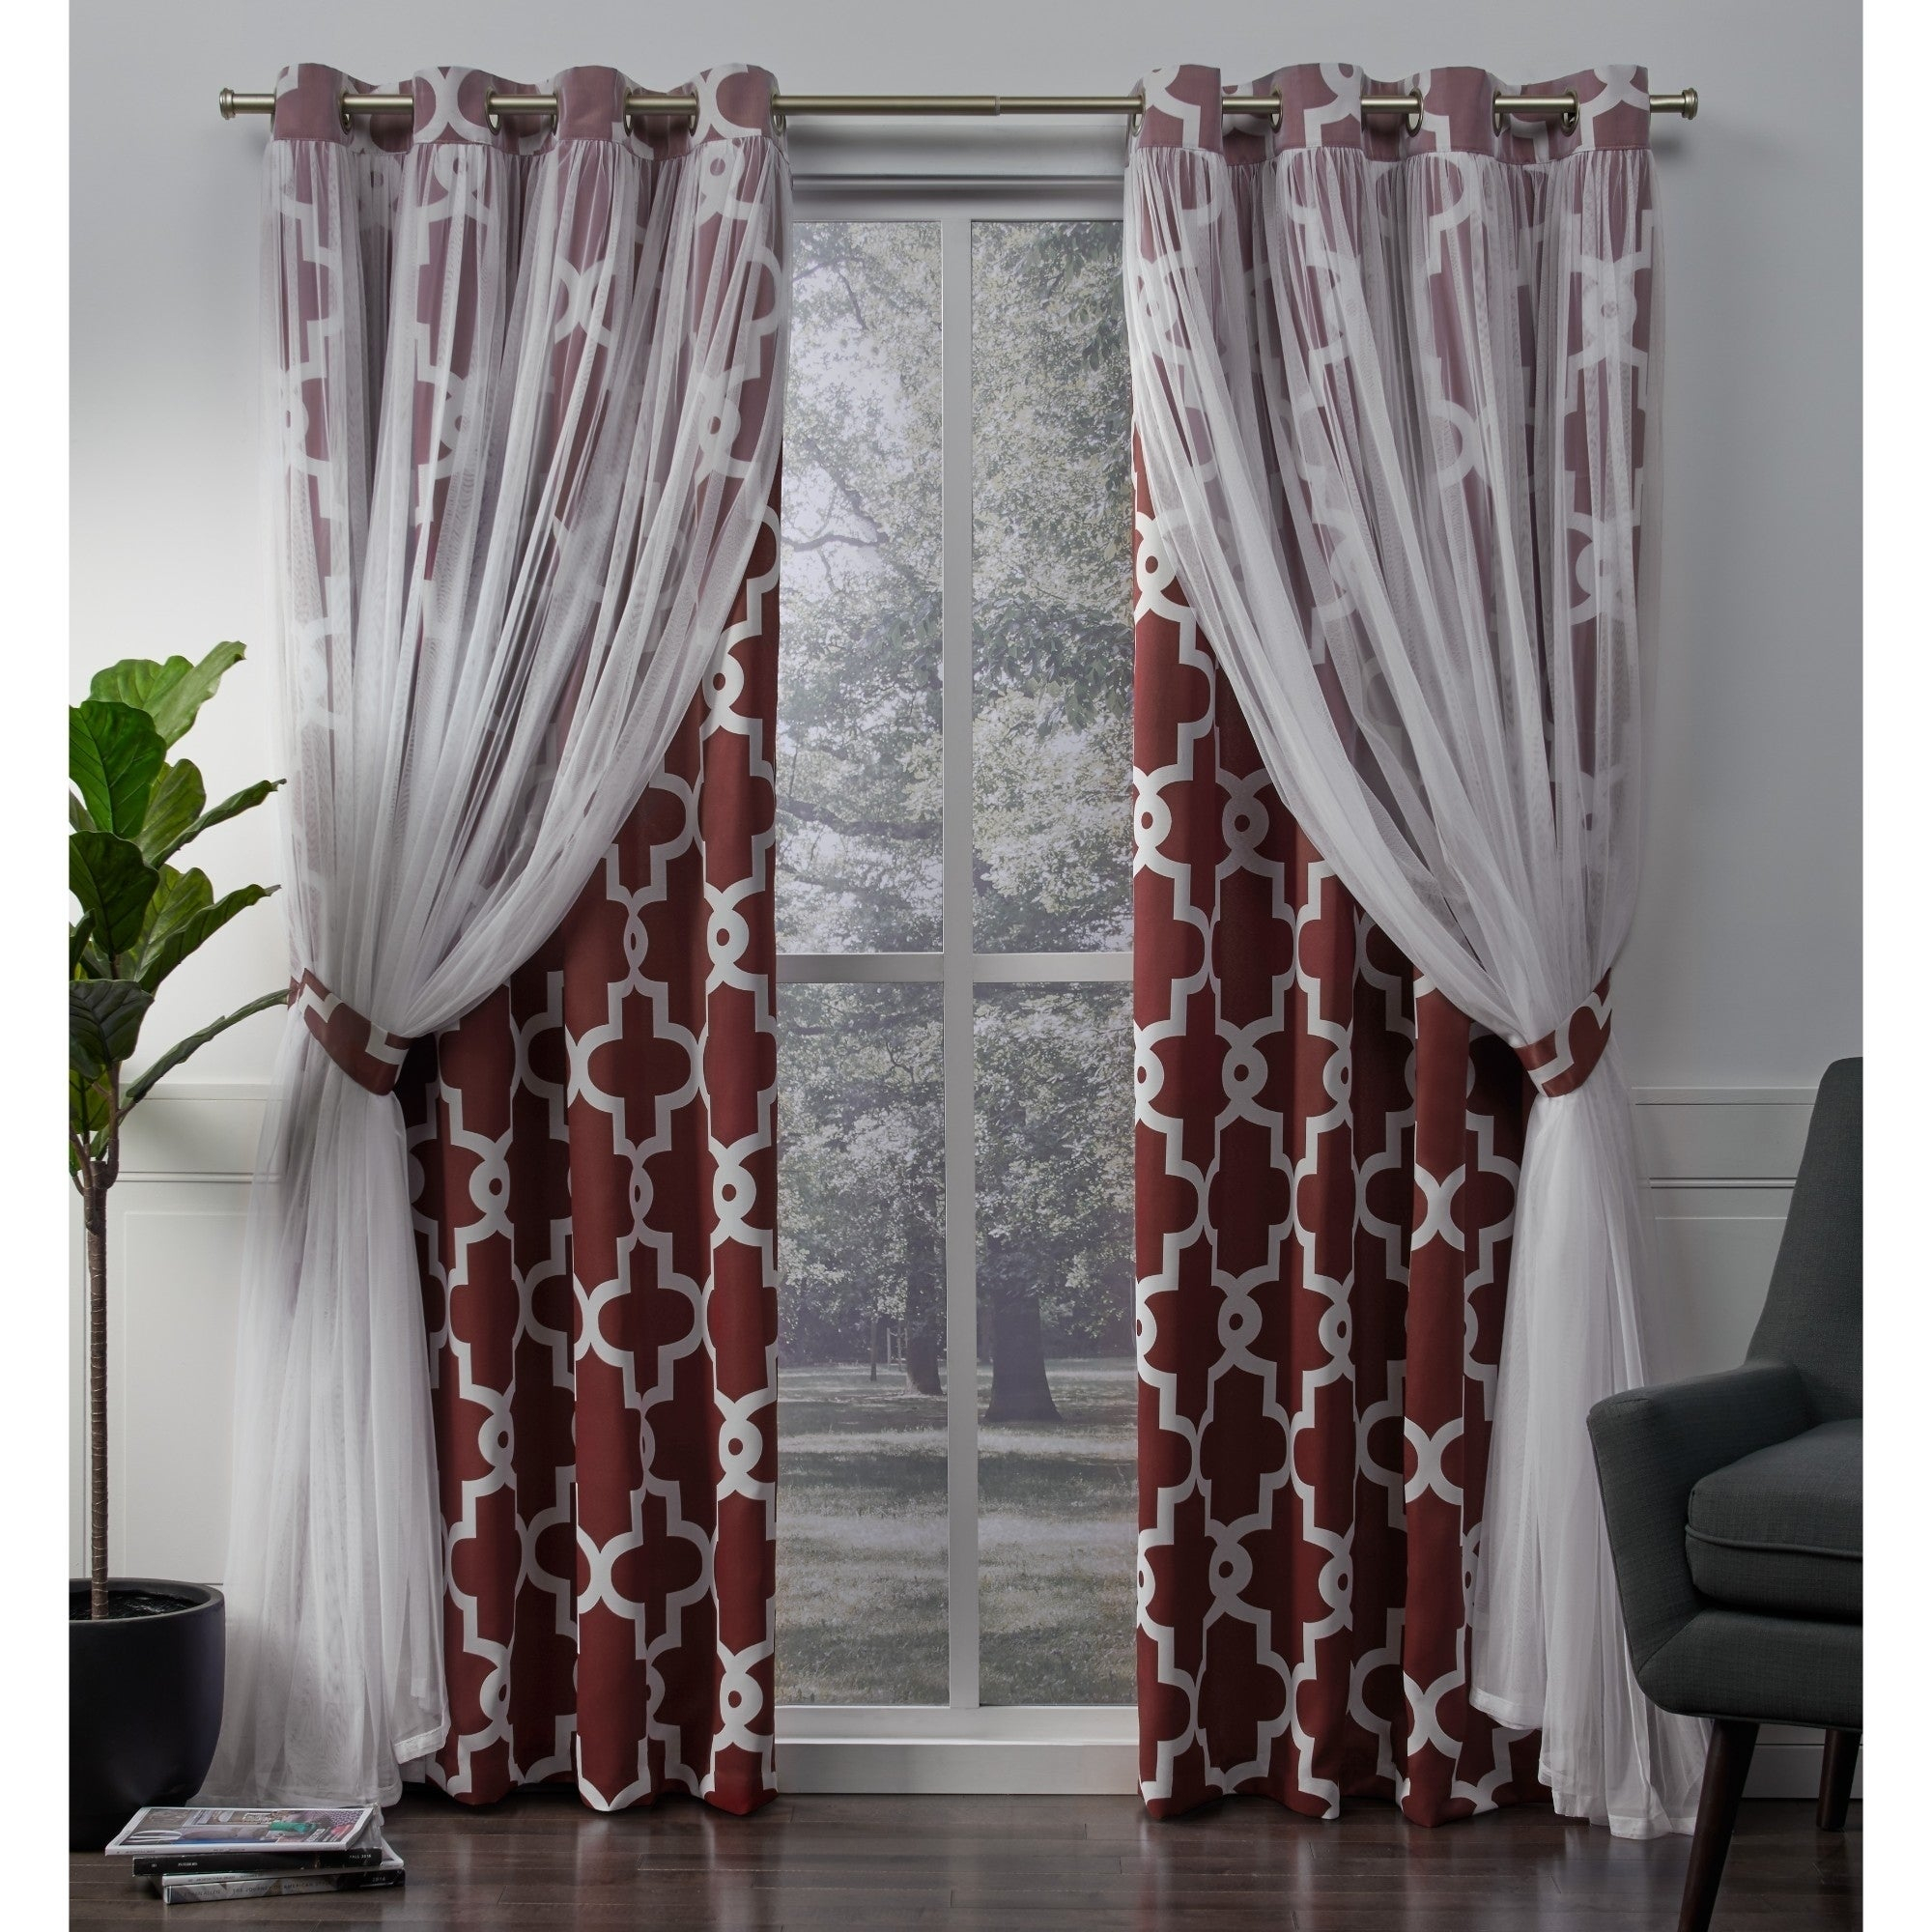 Details About Ati Home Alegra Thermal Woven Blackout Grommet Top Curtain Pertaining To Thermal Woven Blackout Grommet Top Curtain Panel Pairs (View 3 of 30)